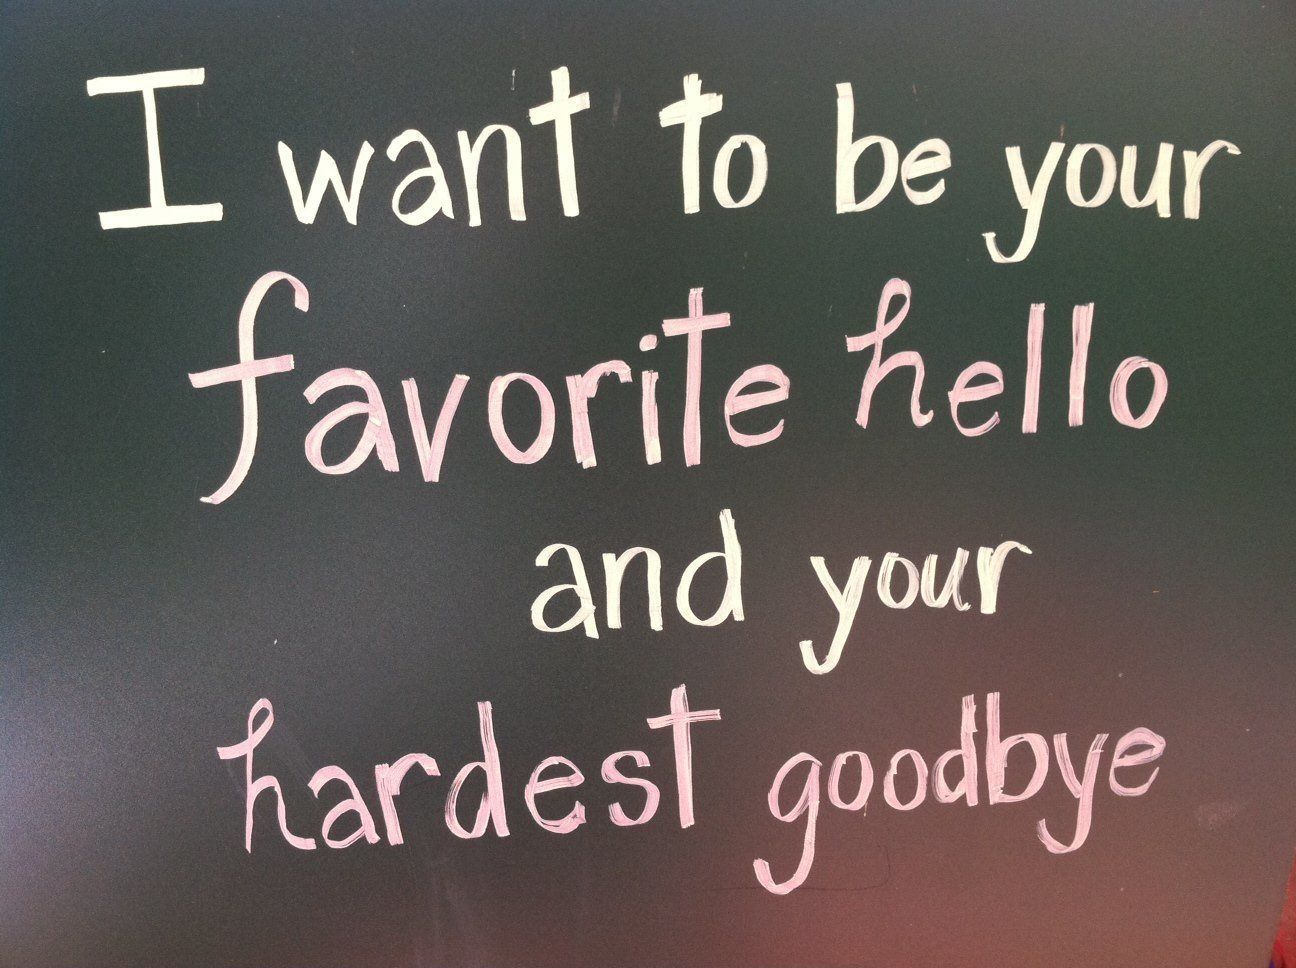 Hello wednesday pictures photos and images for facebook tumblr - Favorite Hello And Hardest Goodbye